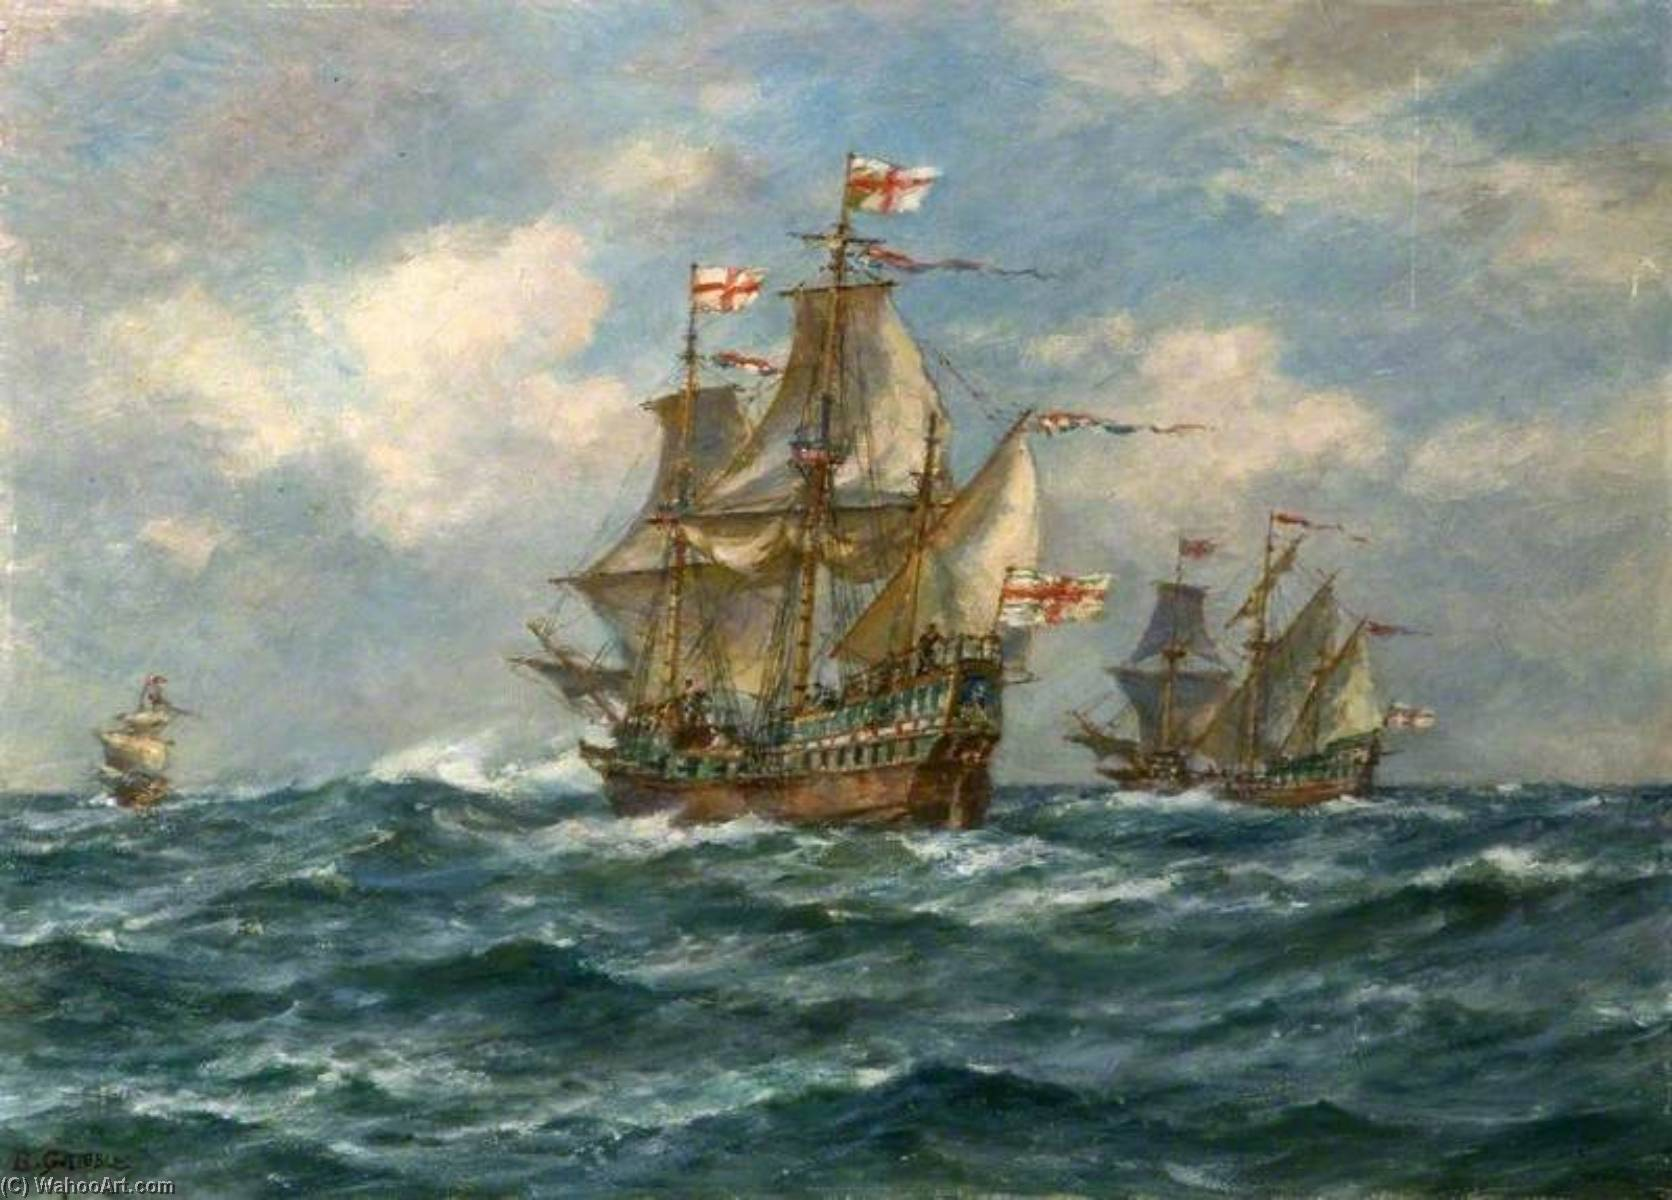 The `Golden Hind` Sails Another Great Enterprise, 13 December 1577, 1950 by Bernard Finnigan Gribble | Art Reproduction | WahooArt.com